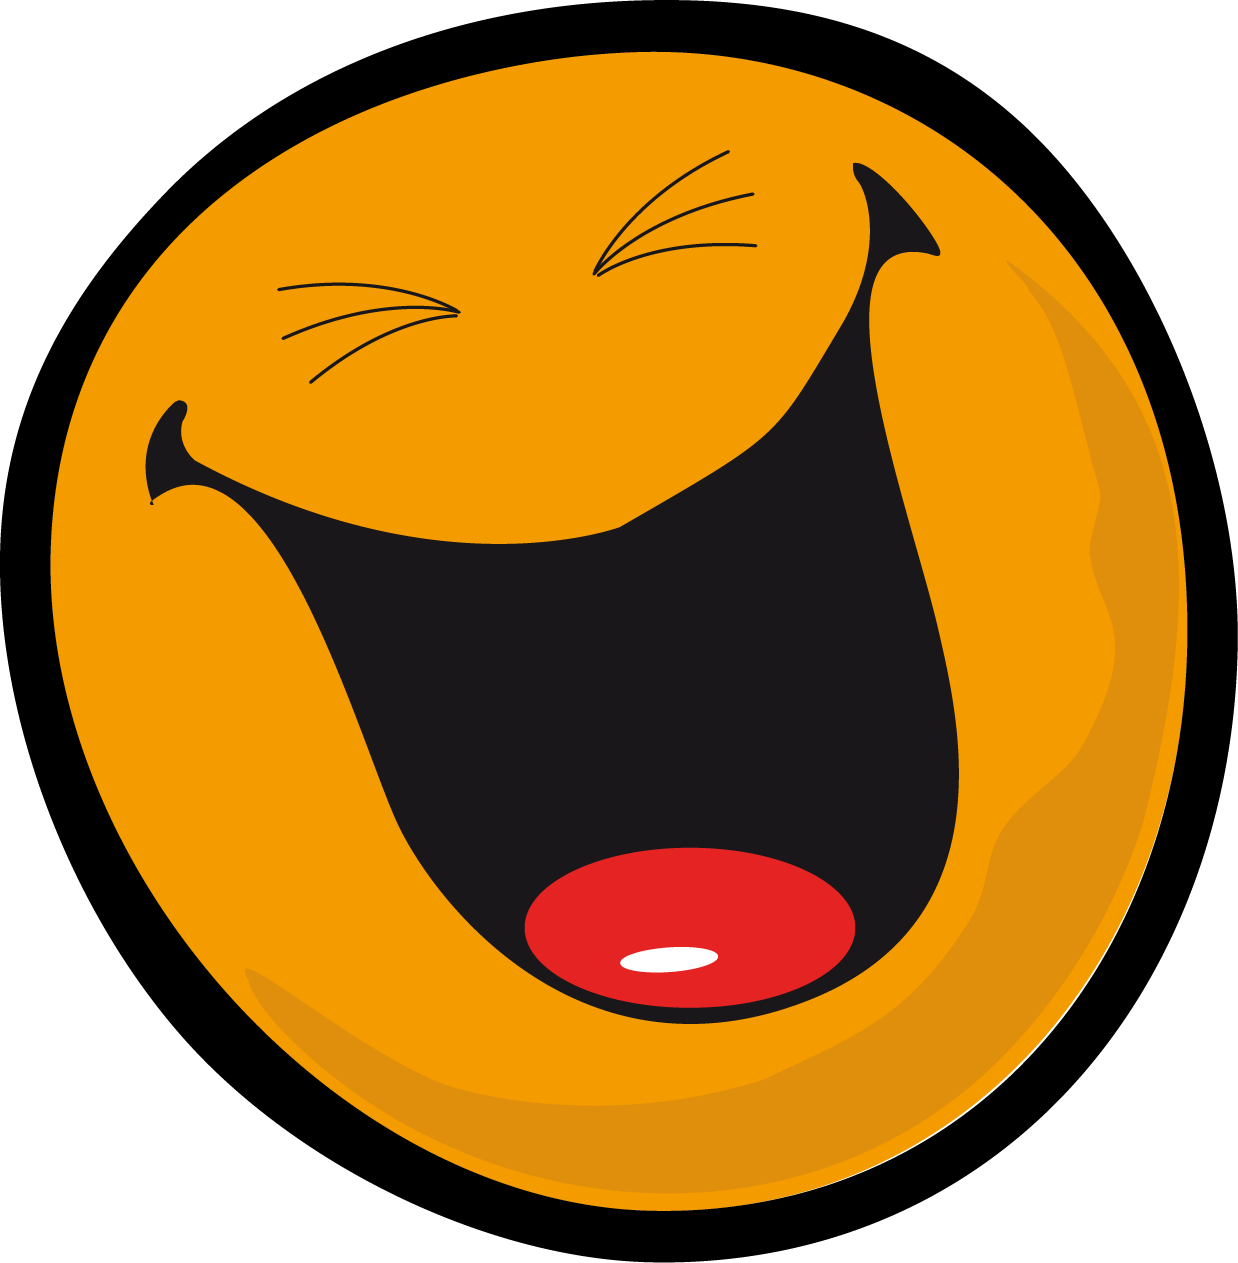 Smiley clipart. Very laugh face clipartly